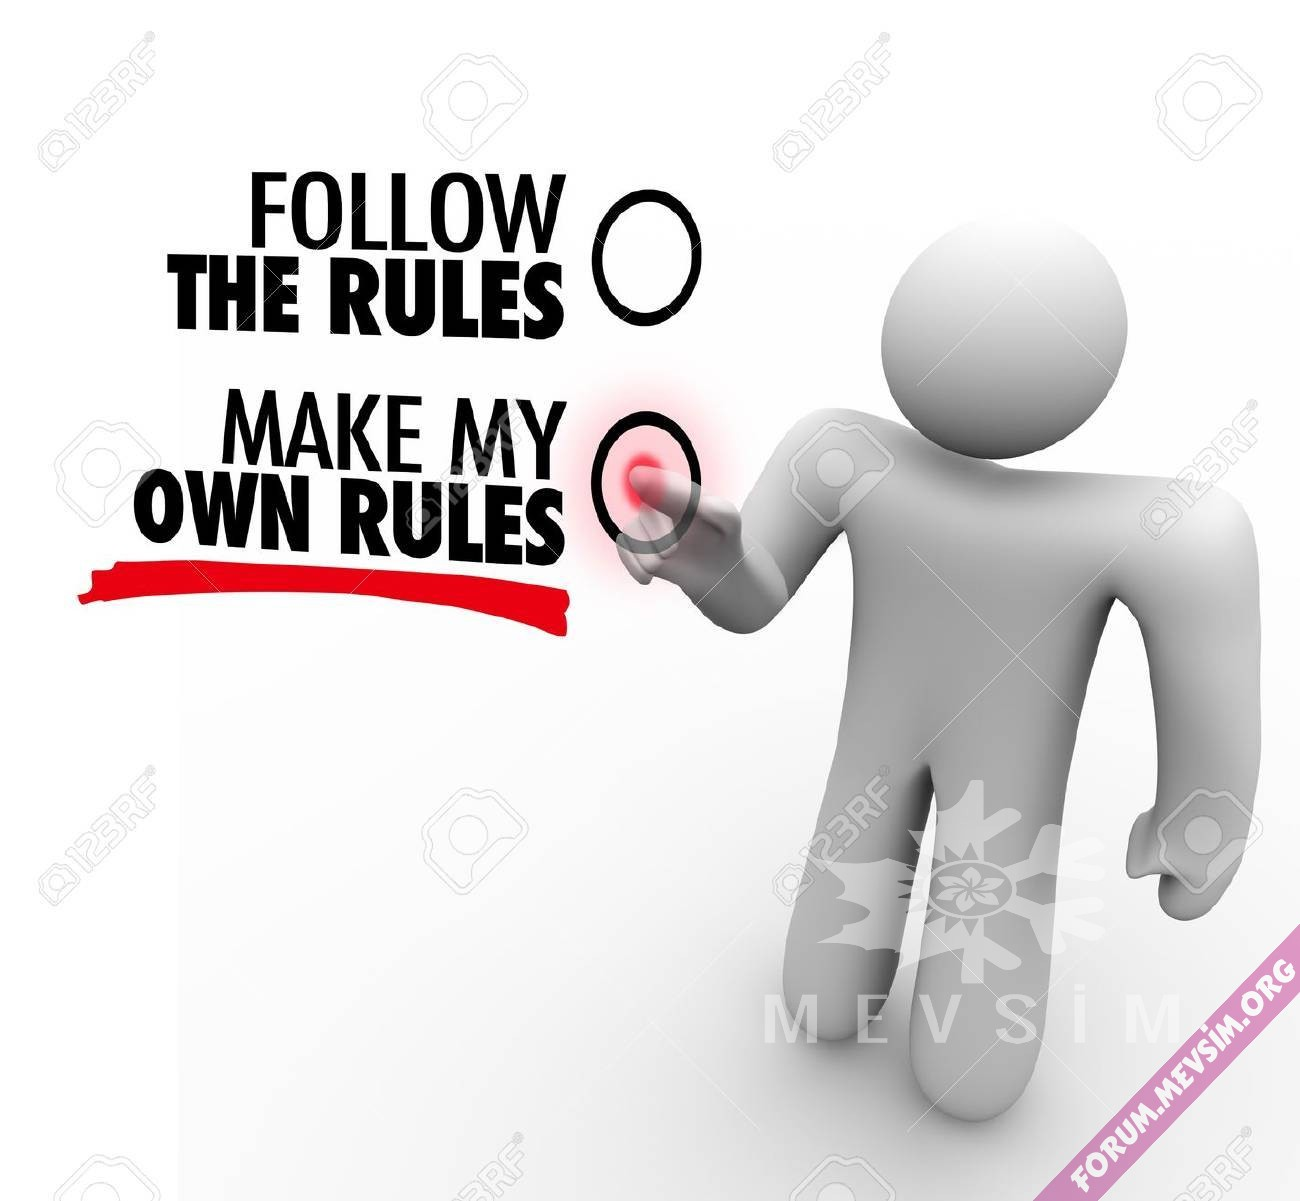 20622181-the-words-follow-the-rules-and-make-my-own-rules-on-a-touch-screen-and-a-person-choos...jpg